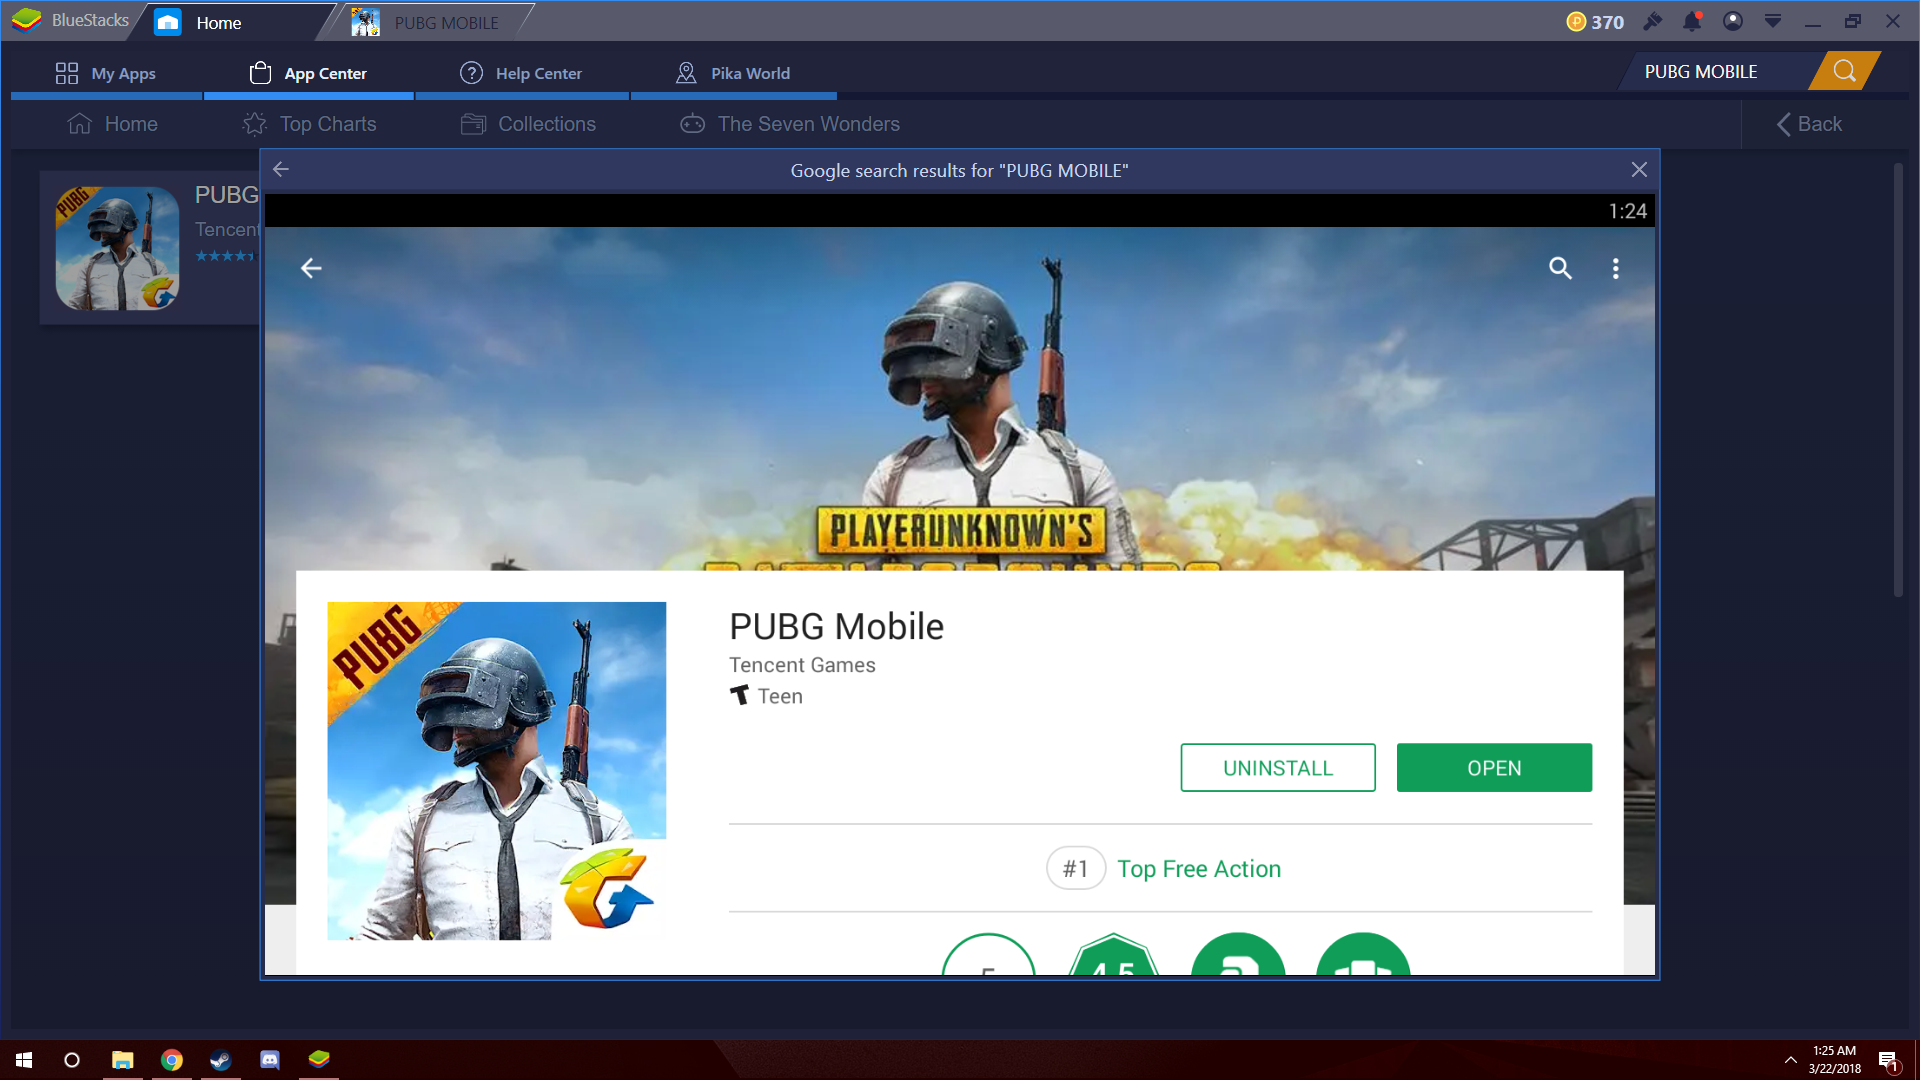 Steam Community Guide How To Play Pubg Mobile On Pc Mobil Set Up Bluestacks Like Your Email Etc You Can Also With Any Other Ios Or Android Device Adding Friends